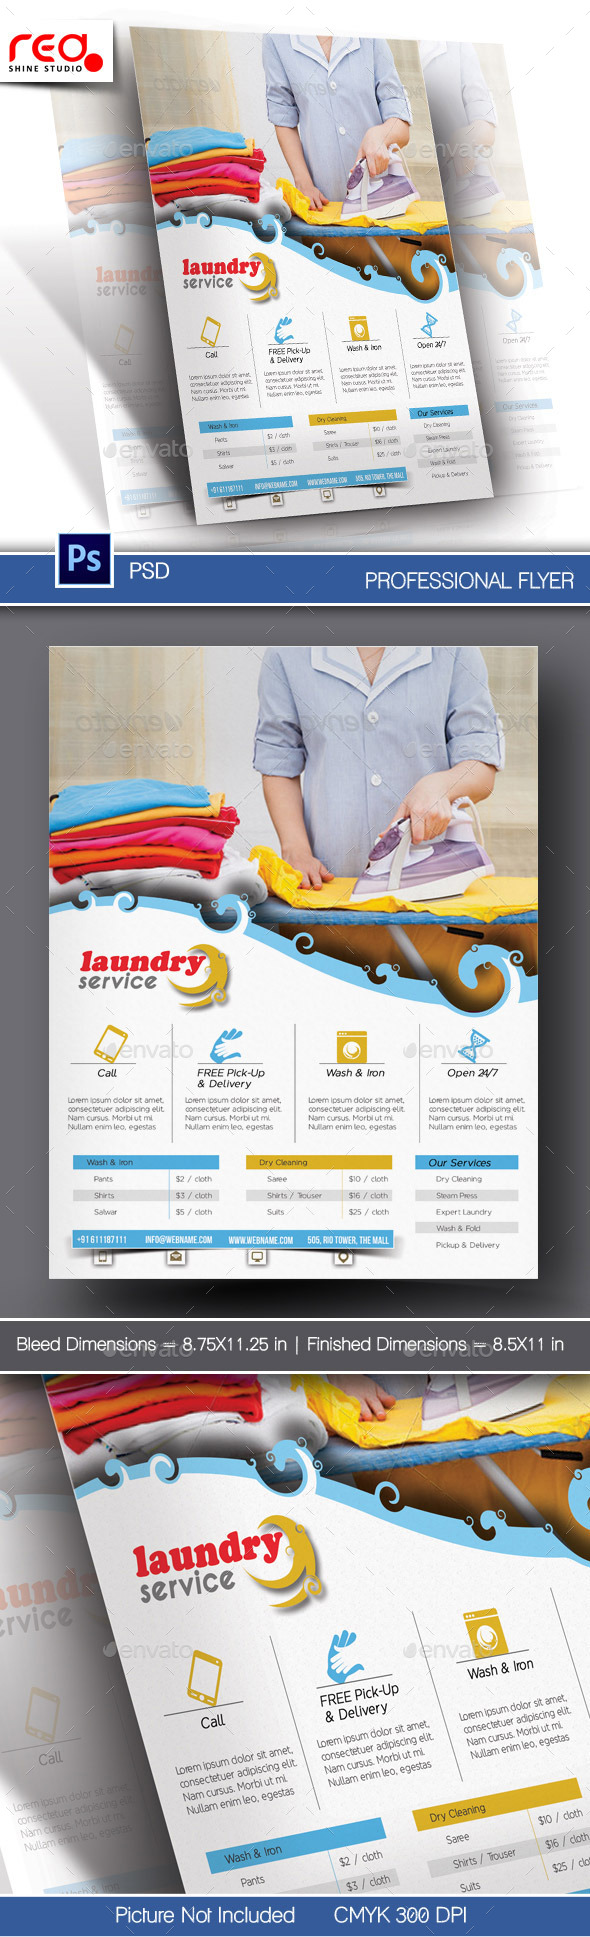 Laundry service flyer poster template by redshinestudio laundry service flyer poster template commerce flyers pronofoot35fo Image collections